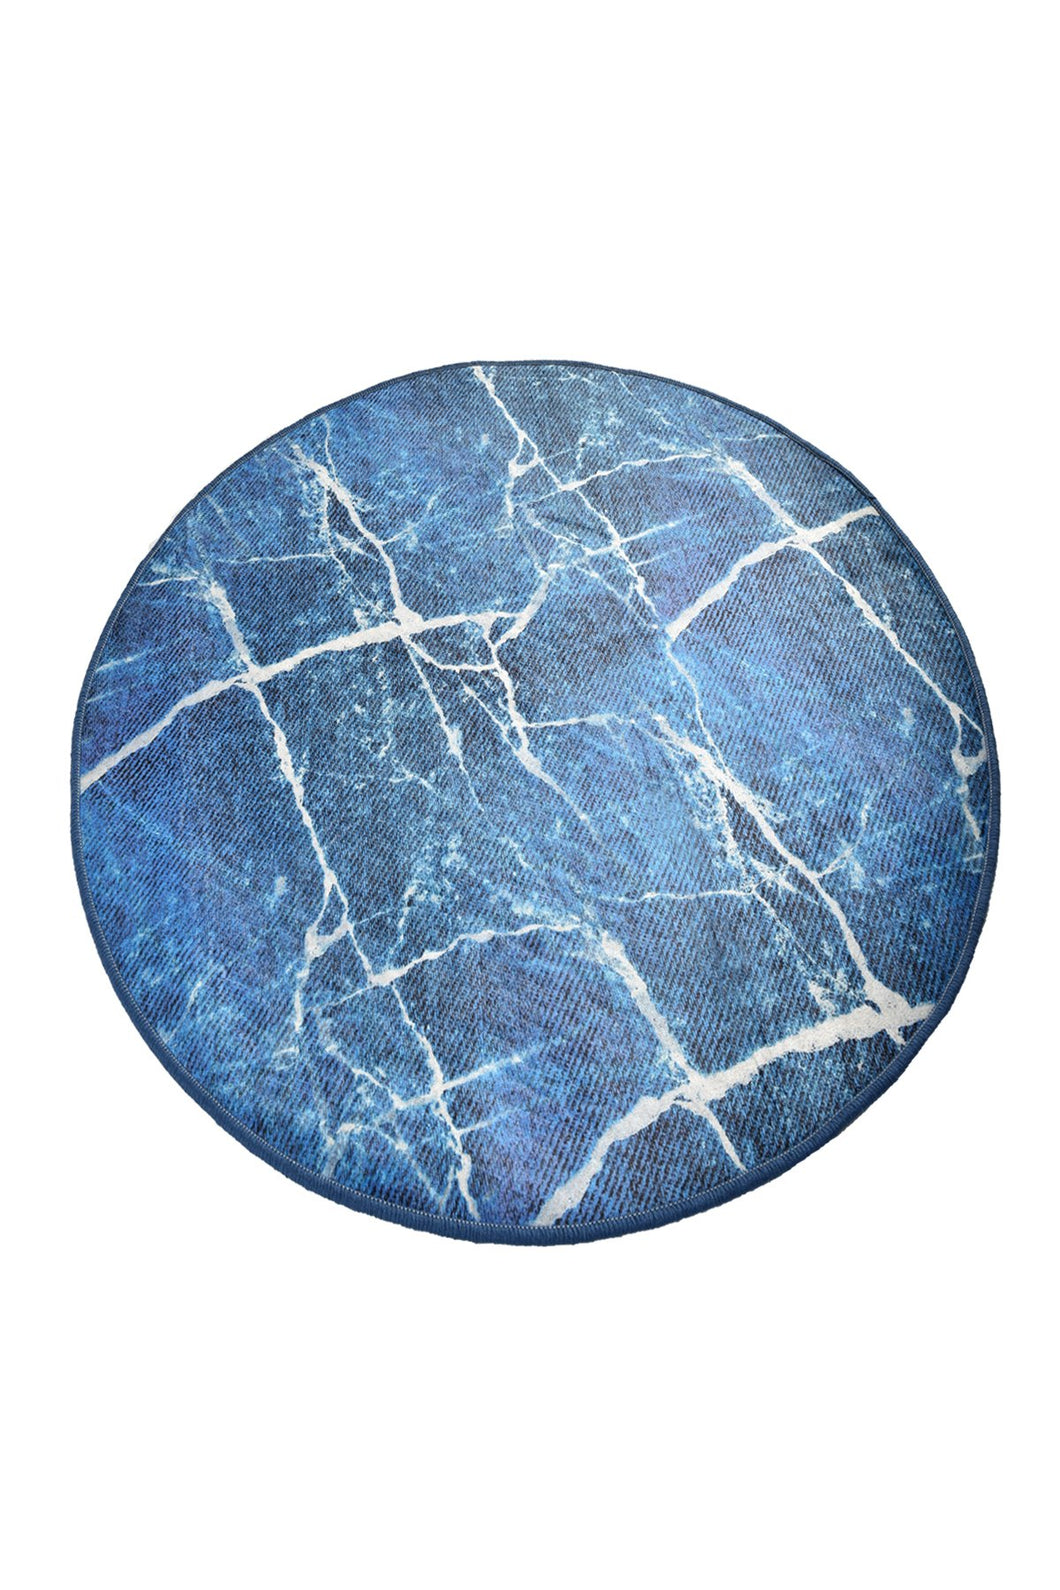 Cansun Denim Round Bath Rug 40